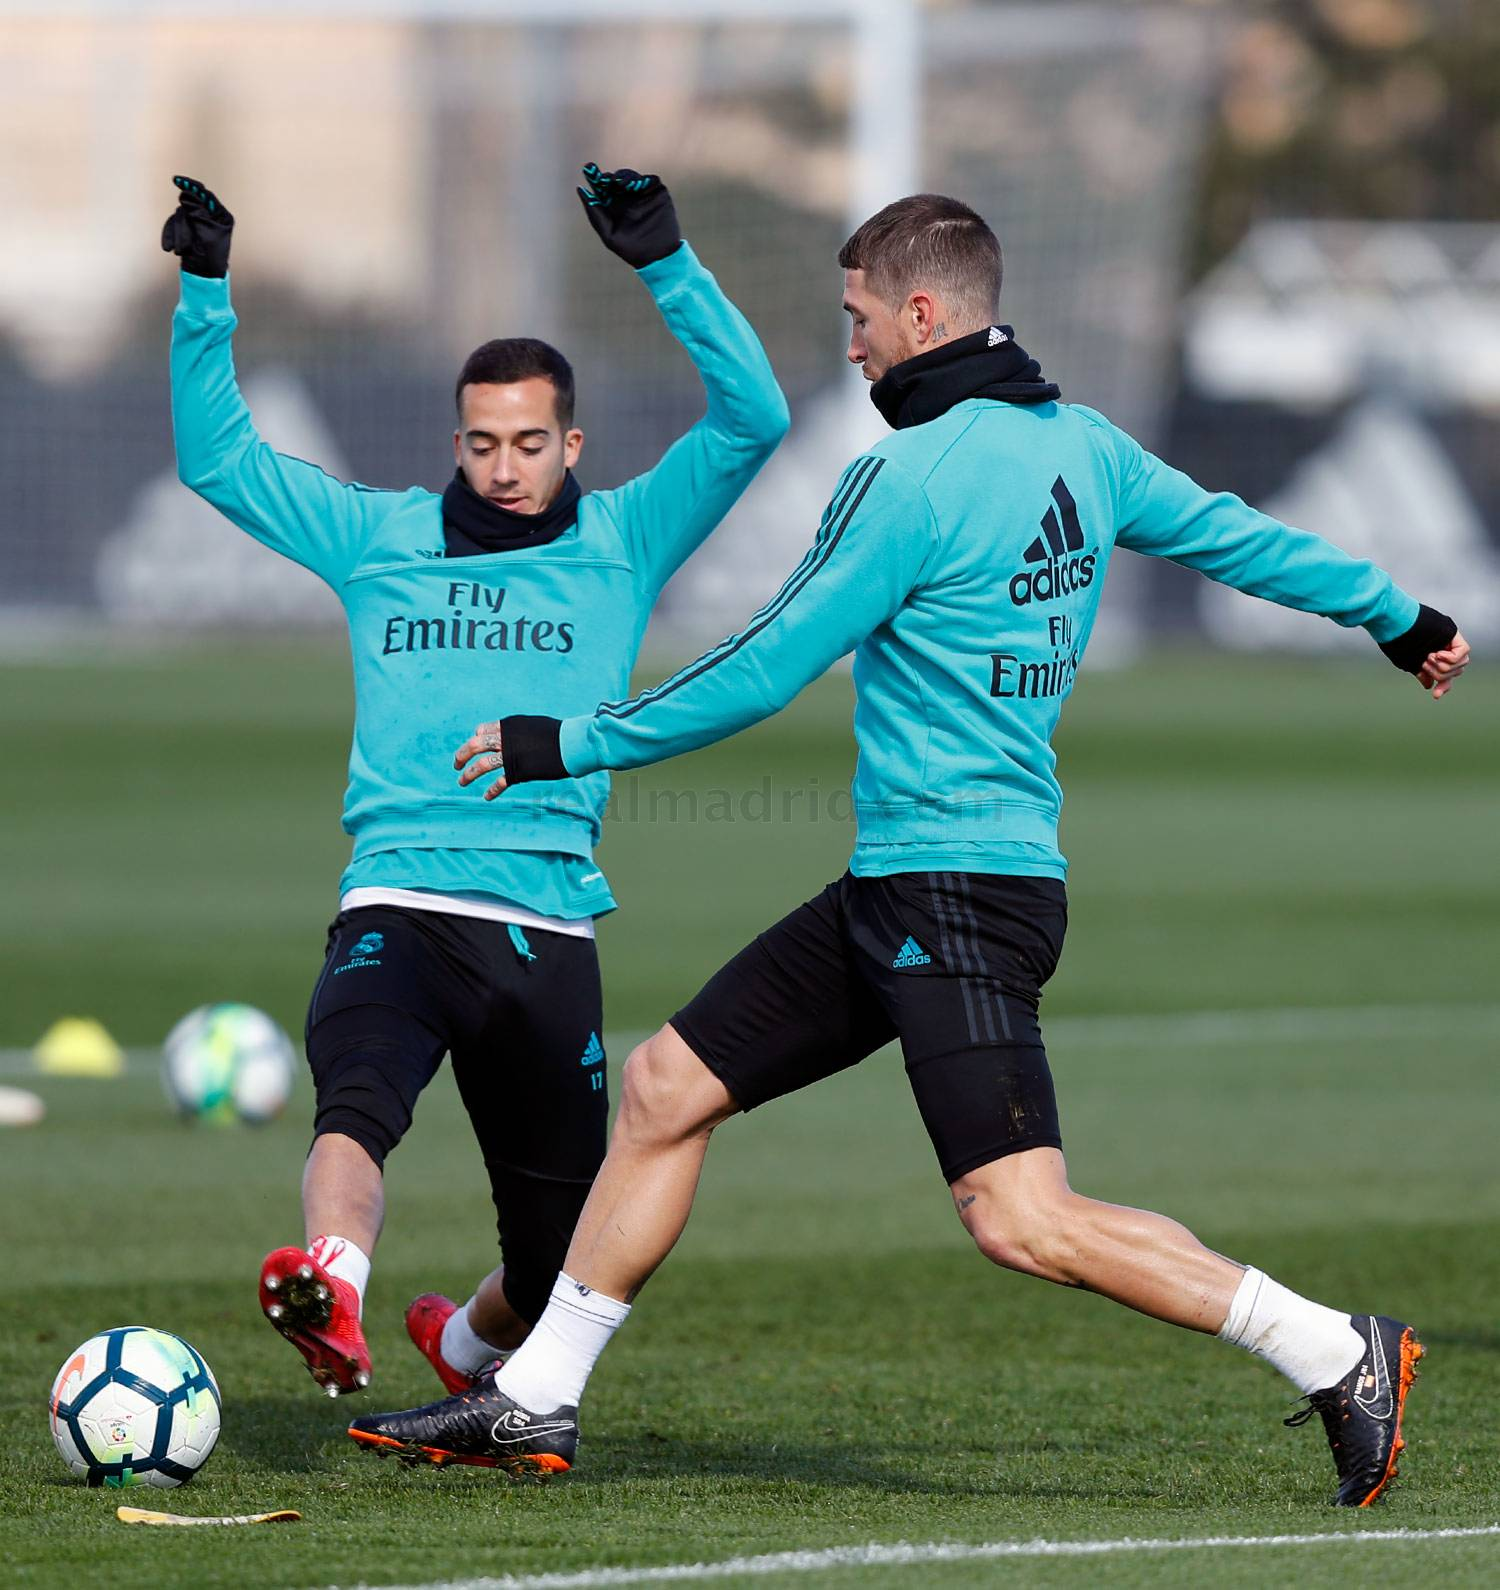 Real Madrid - Entrenamiento del Real Madrid - 16-03-2018